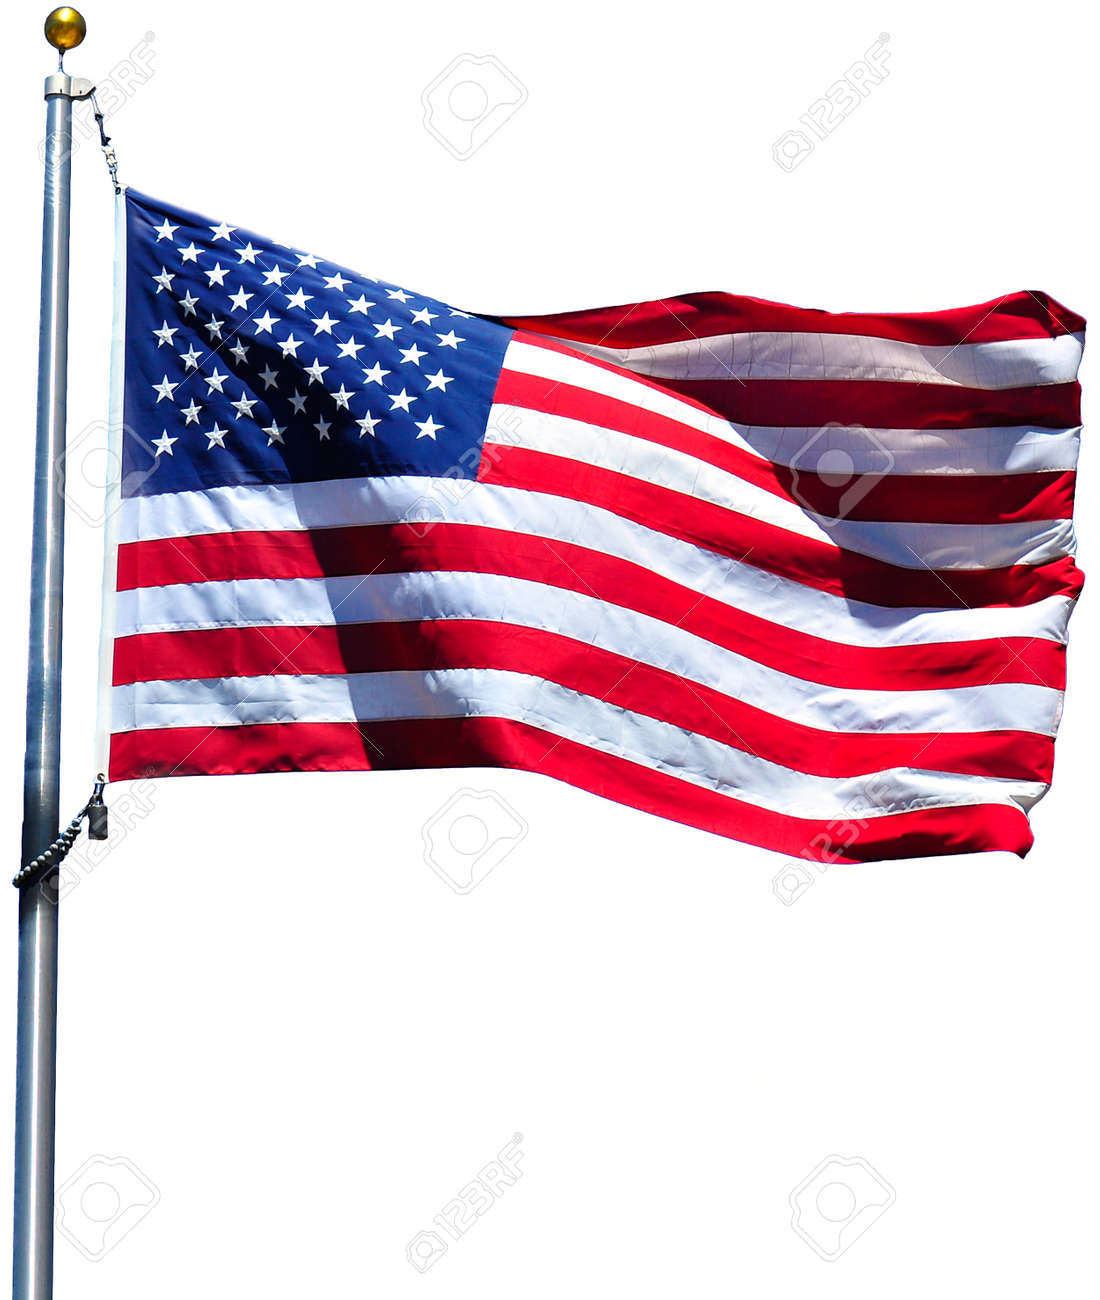 American flag waving in the wind, isolated Stock Photo - 10352512